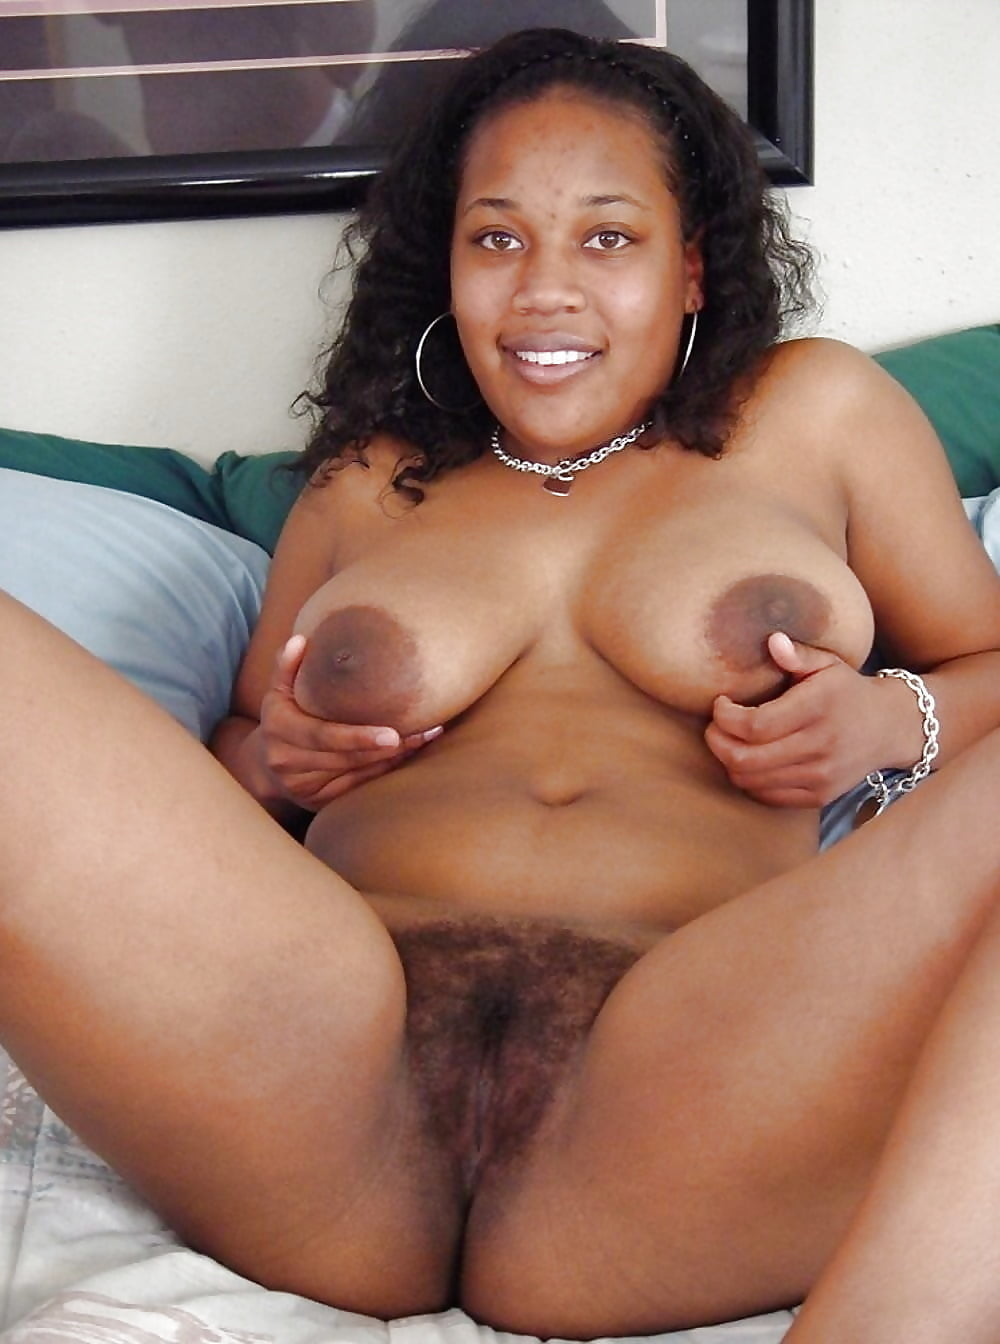 Only black women with big pussies, hustler mini waterproof body massager